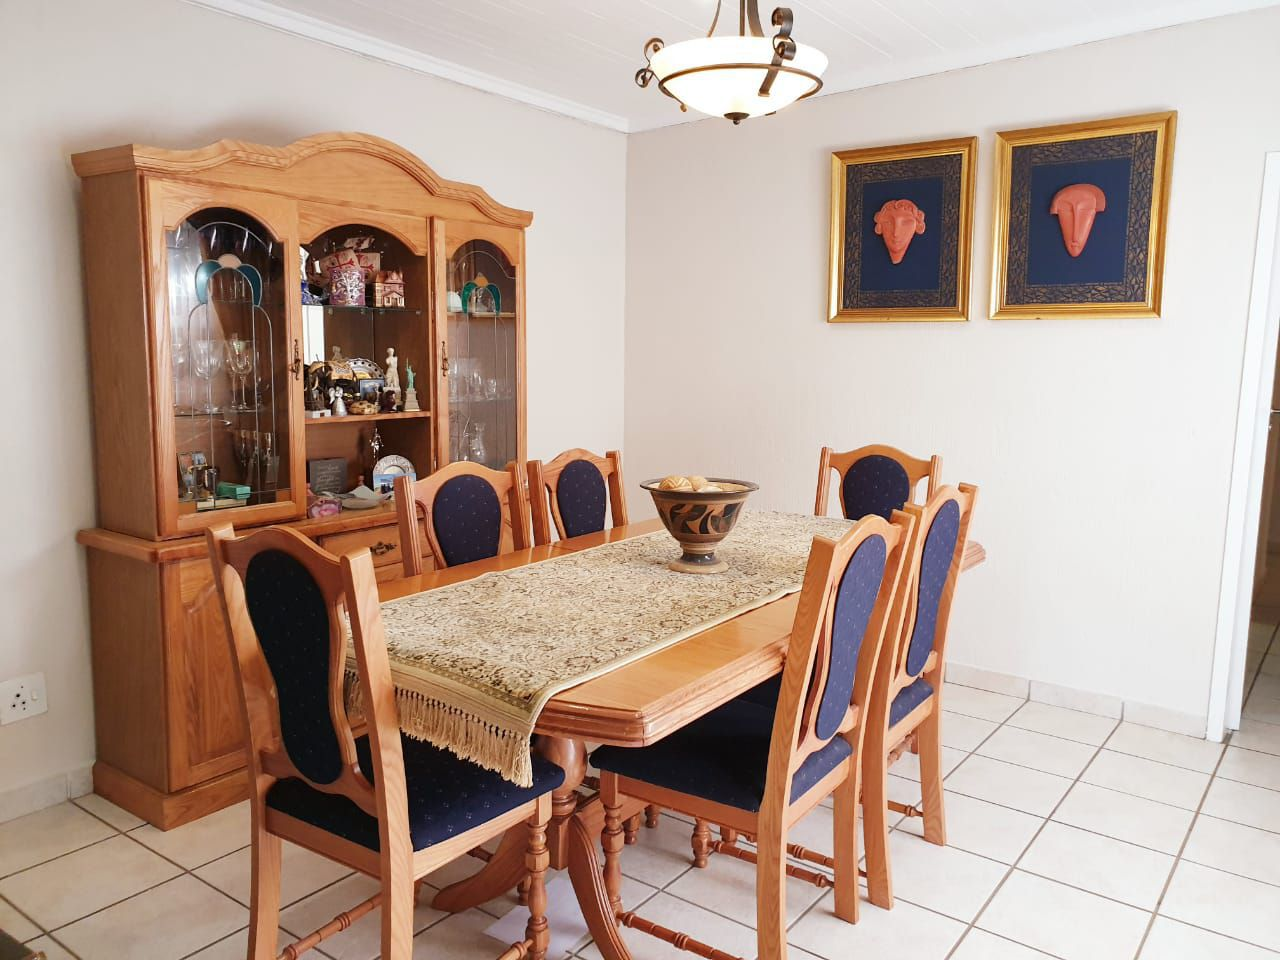 House in Miederpark - Dining Room.jpg